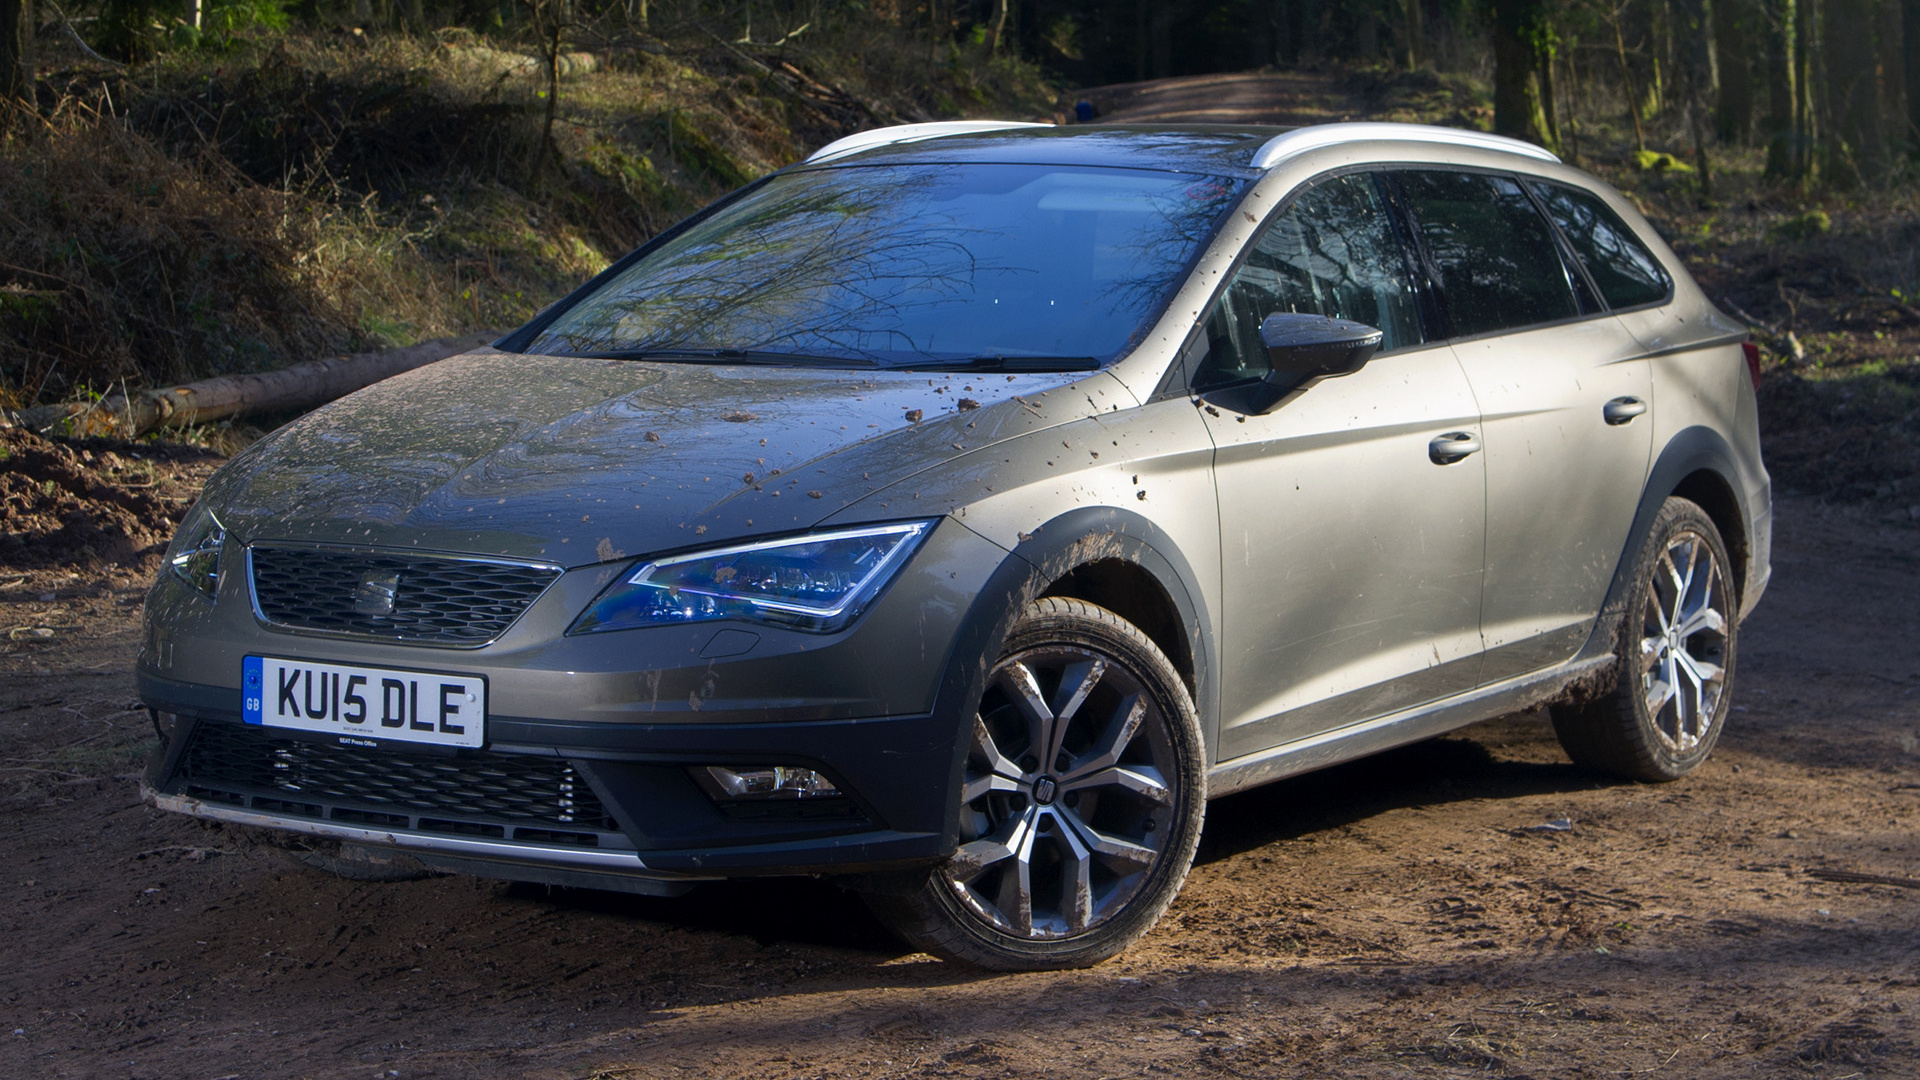 seat leon x perience 2015 uk wallpapers and hd images. Black Bedroom Furniture Sets. Home Design Ideas